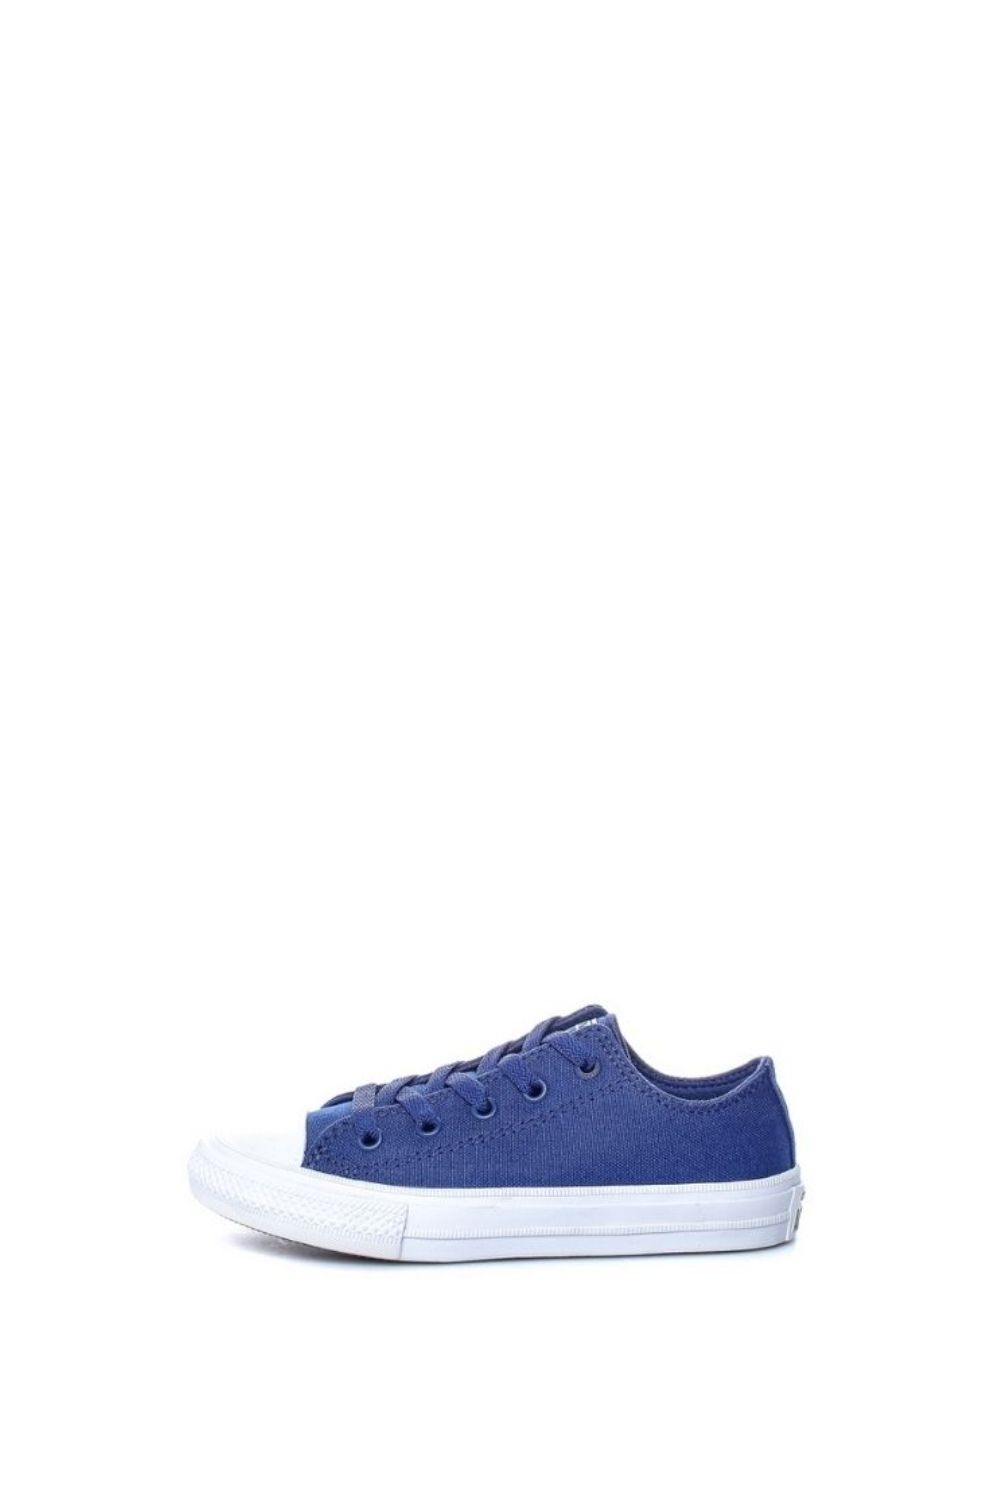 e9eeff83920 Collective Online CONVERSE – Unisex παιδικά παπούτσια Chuck Taylor All Star  II Ox CONVERSE μπλε